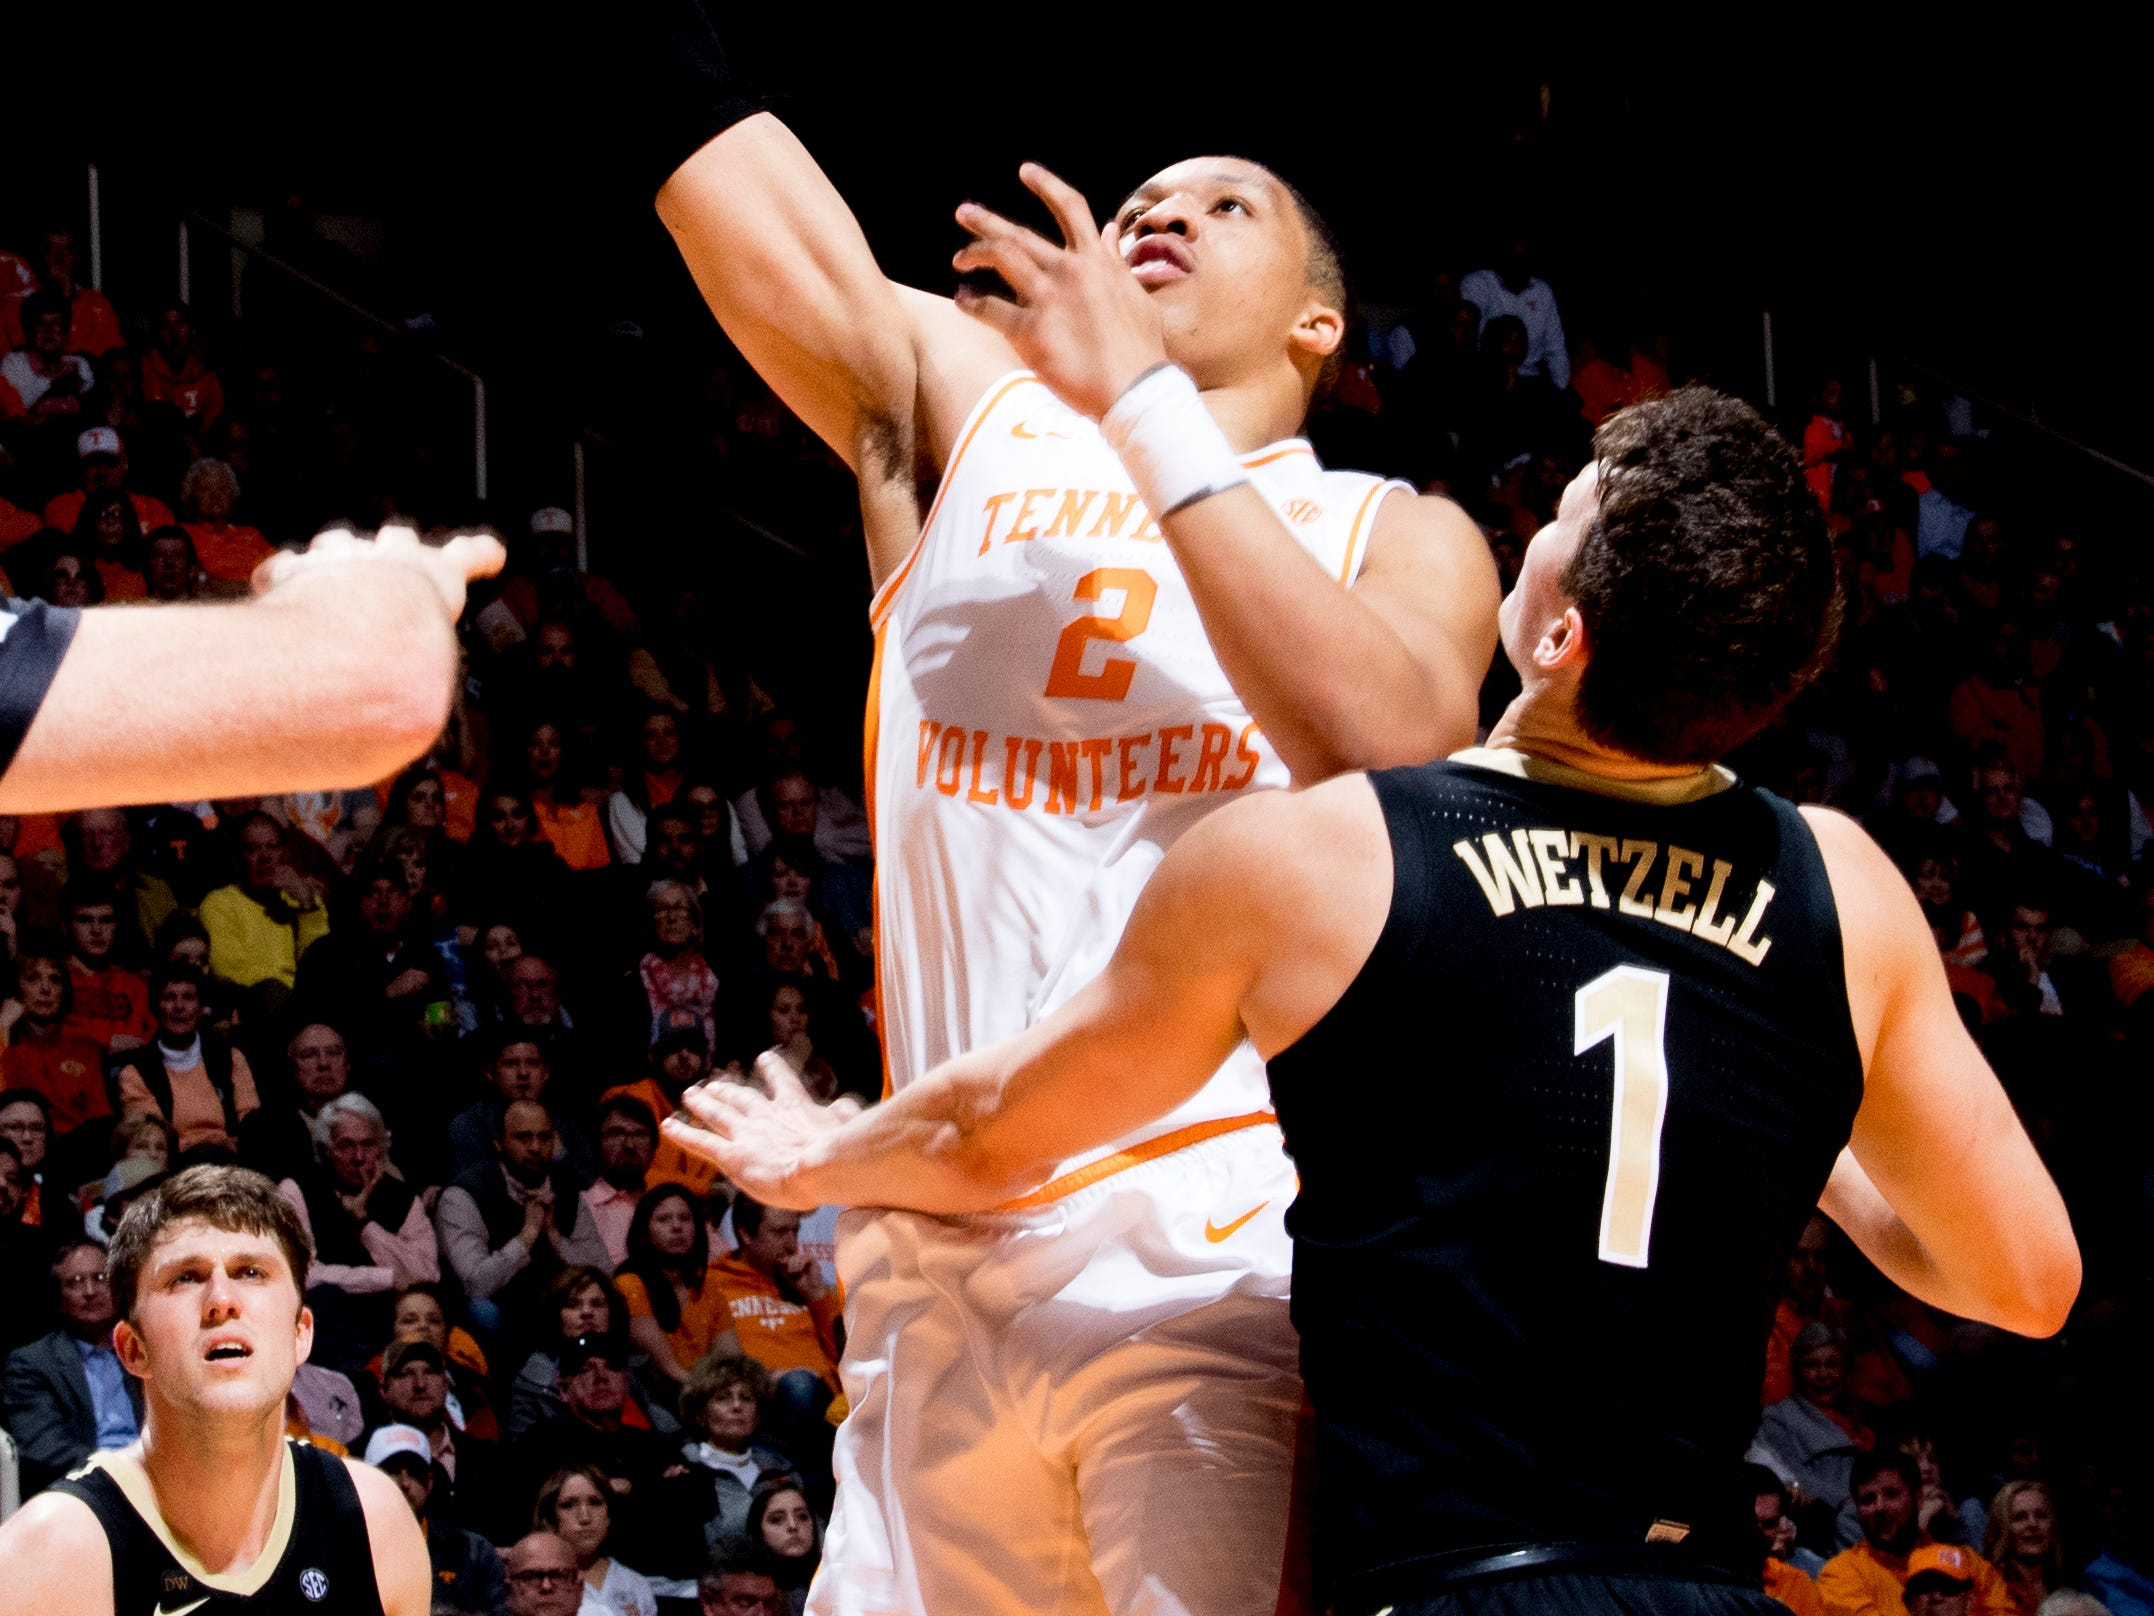 Tennessee forward Grant Williams (2) shoots a layup as Vanderbilt forward/center Yanni Wetzell (1) defends during a game between Tennessee and Vanderbilt at Thompson-Boling Arena in Knoxville, Tennessee on Tuesday, February 19, 2019.